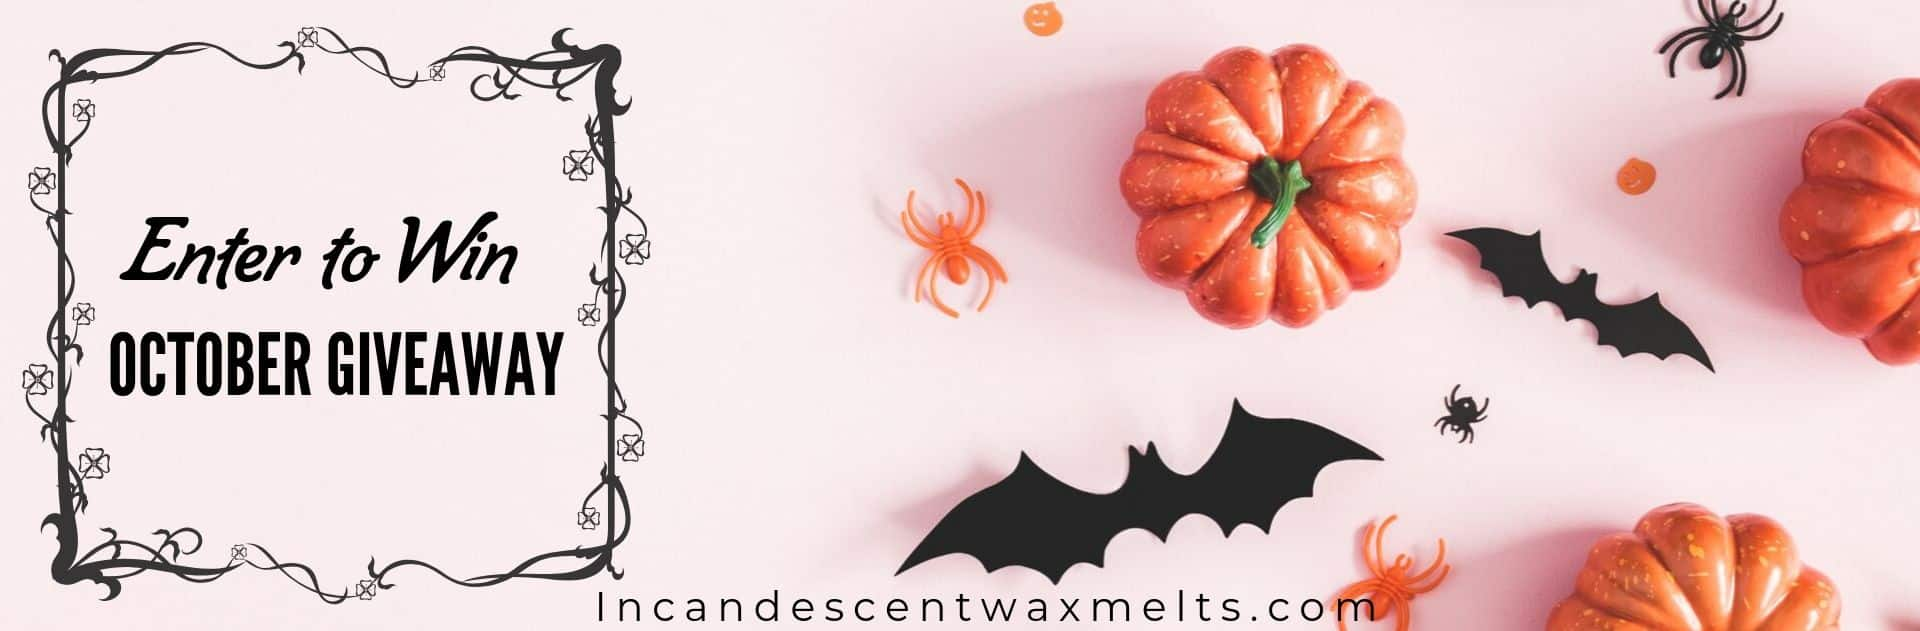 October Scentsy giveaway 2019